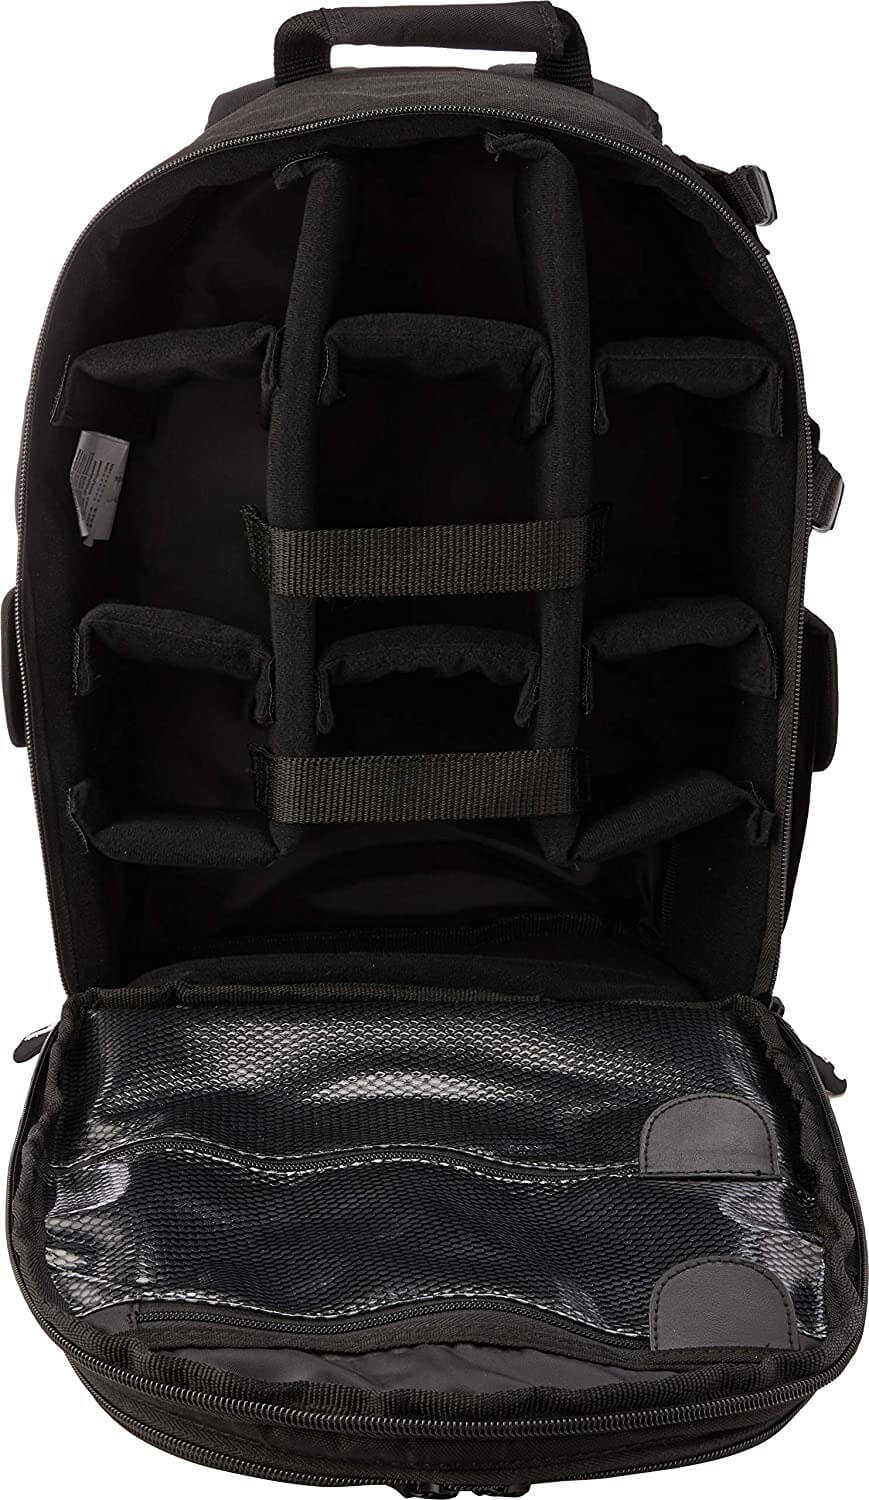 Top Ten DSLR Camera Bags - AmazonBasics Backpack for SLR Cameras and Accessories